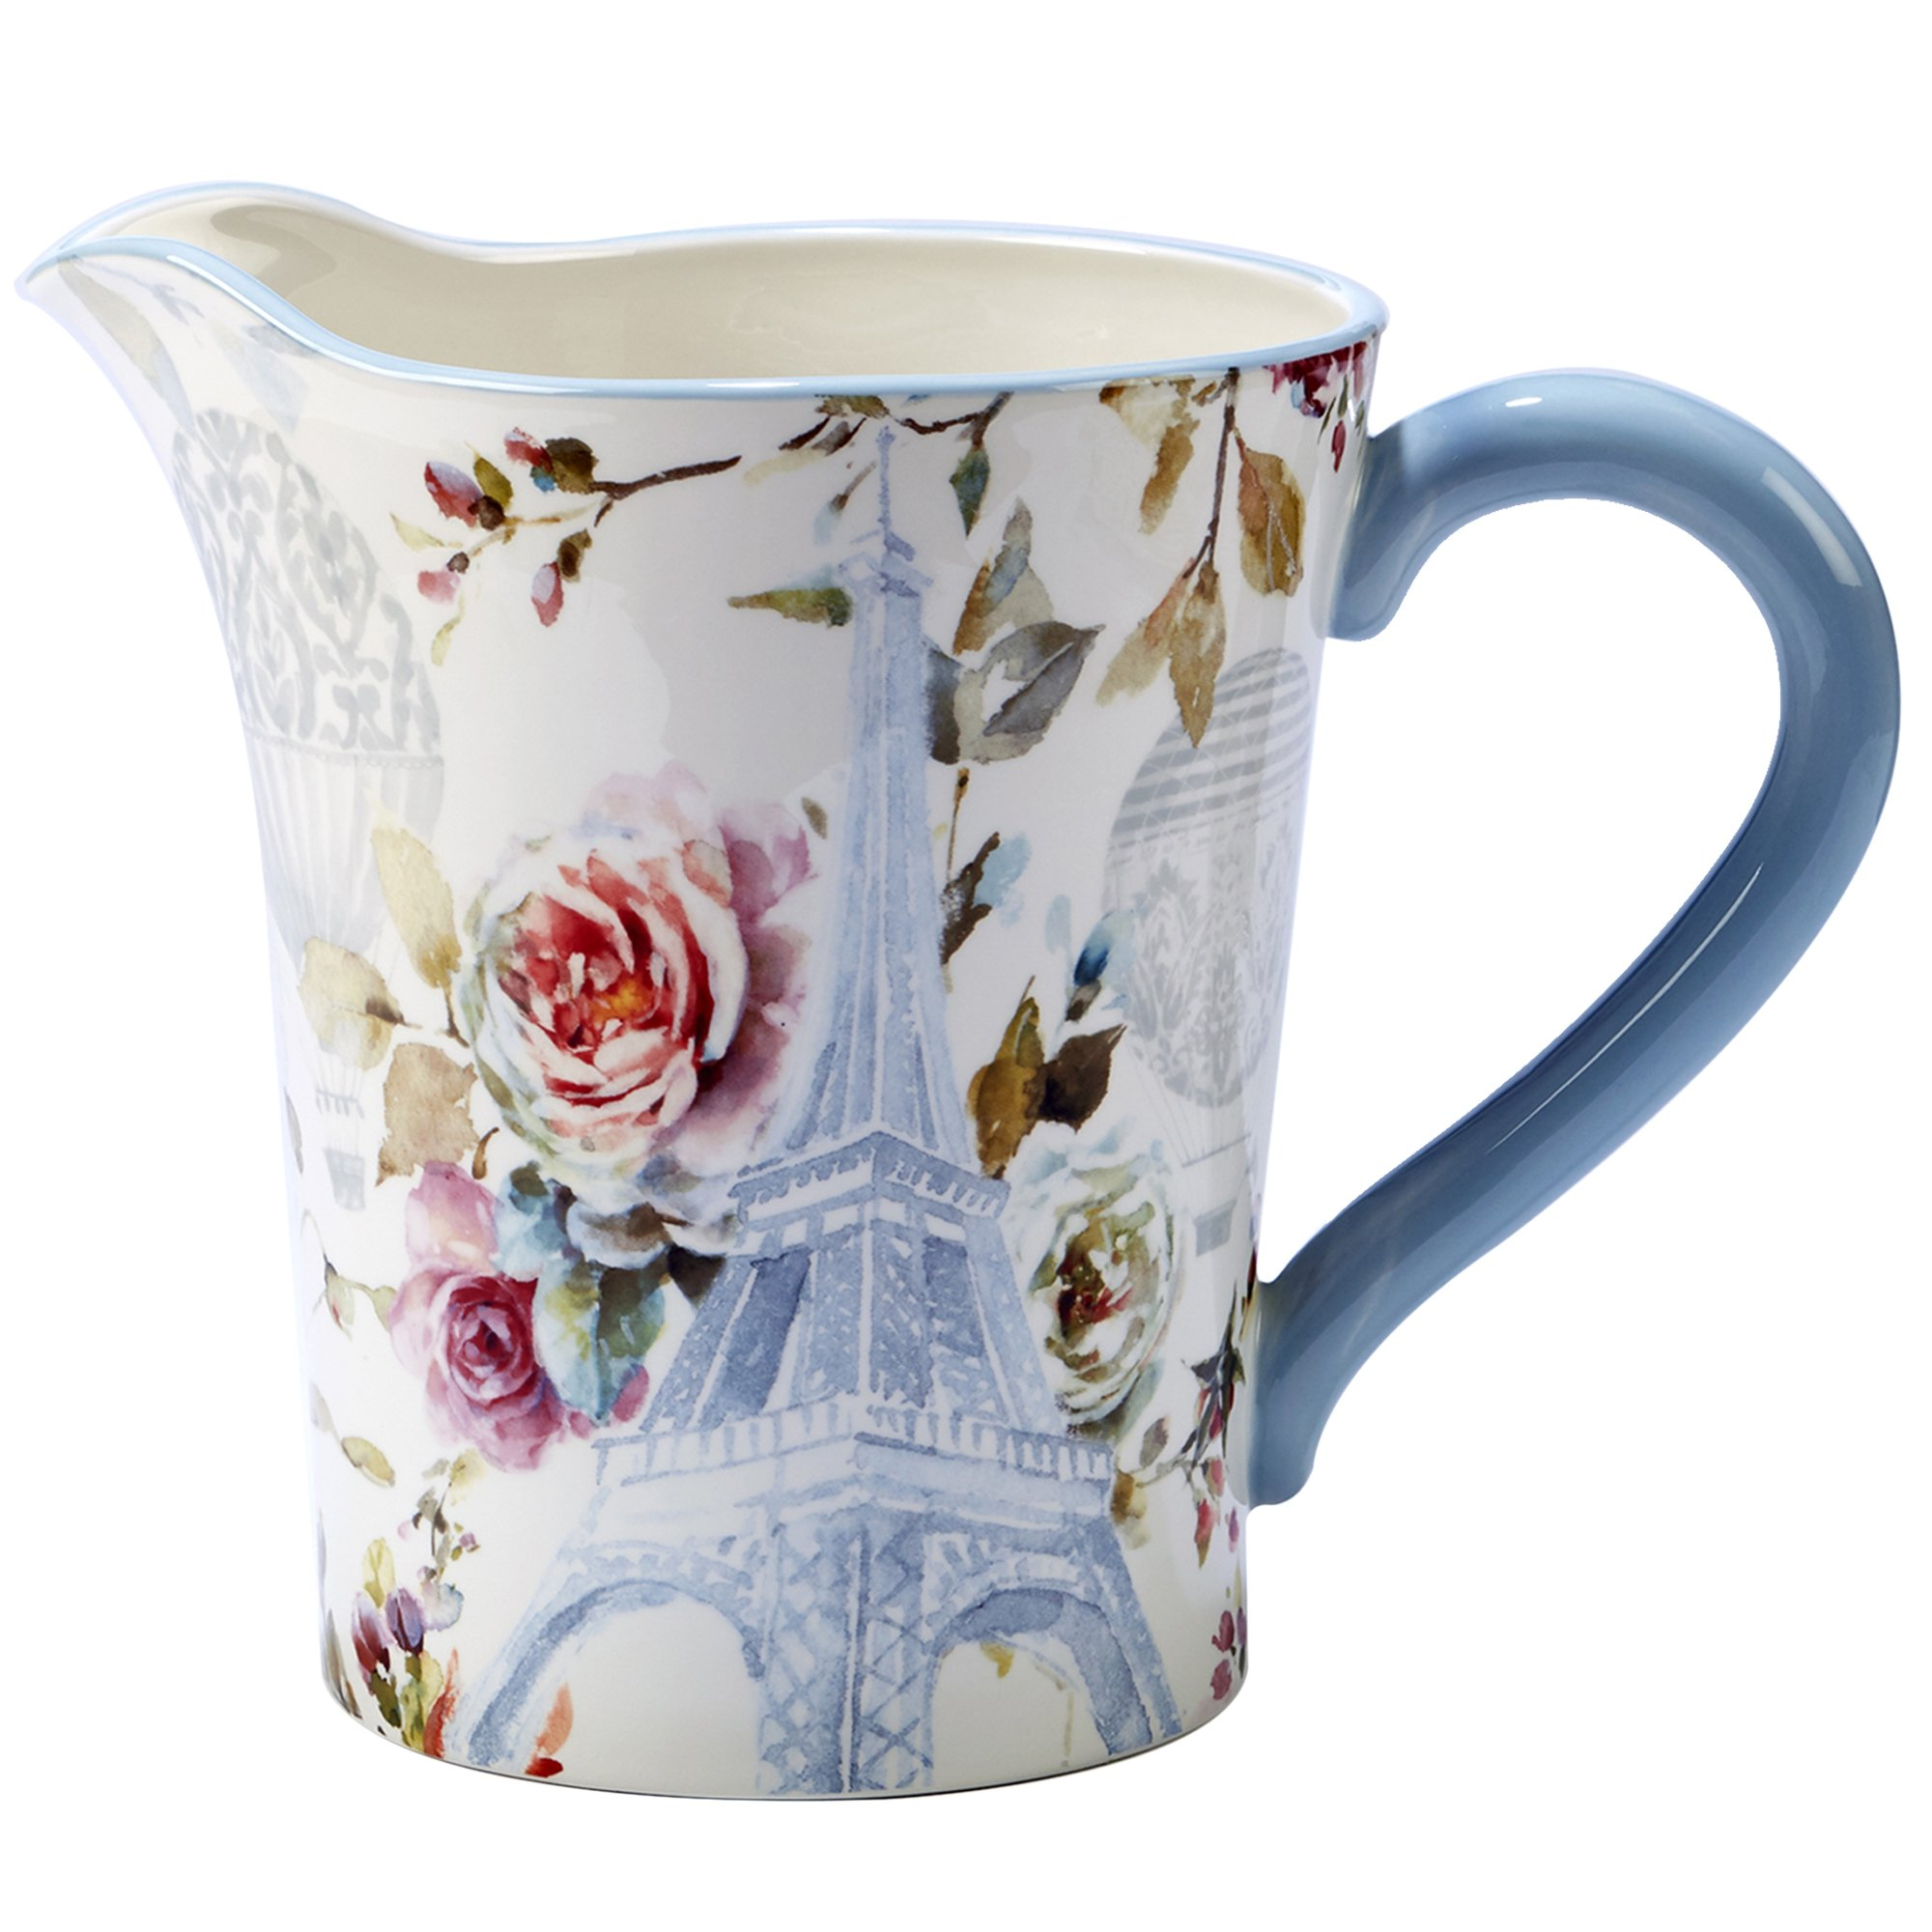 Certified International 23581 Beautiful Romance Ceramic Pitcher, One Size/3.5 quart, Multicolor